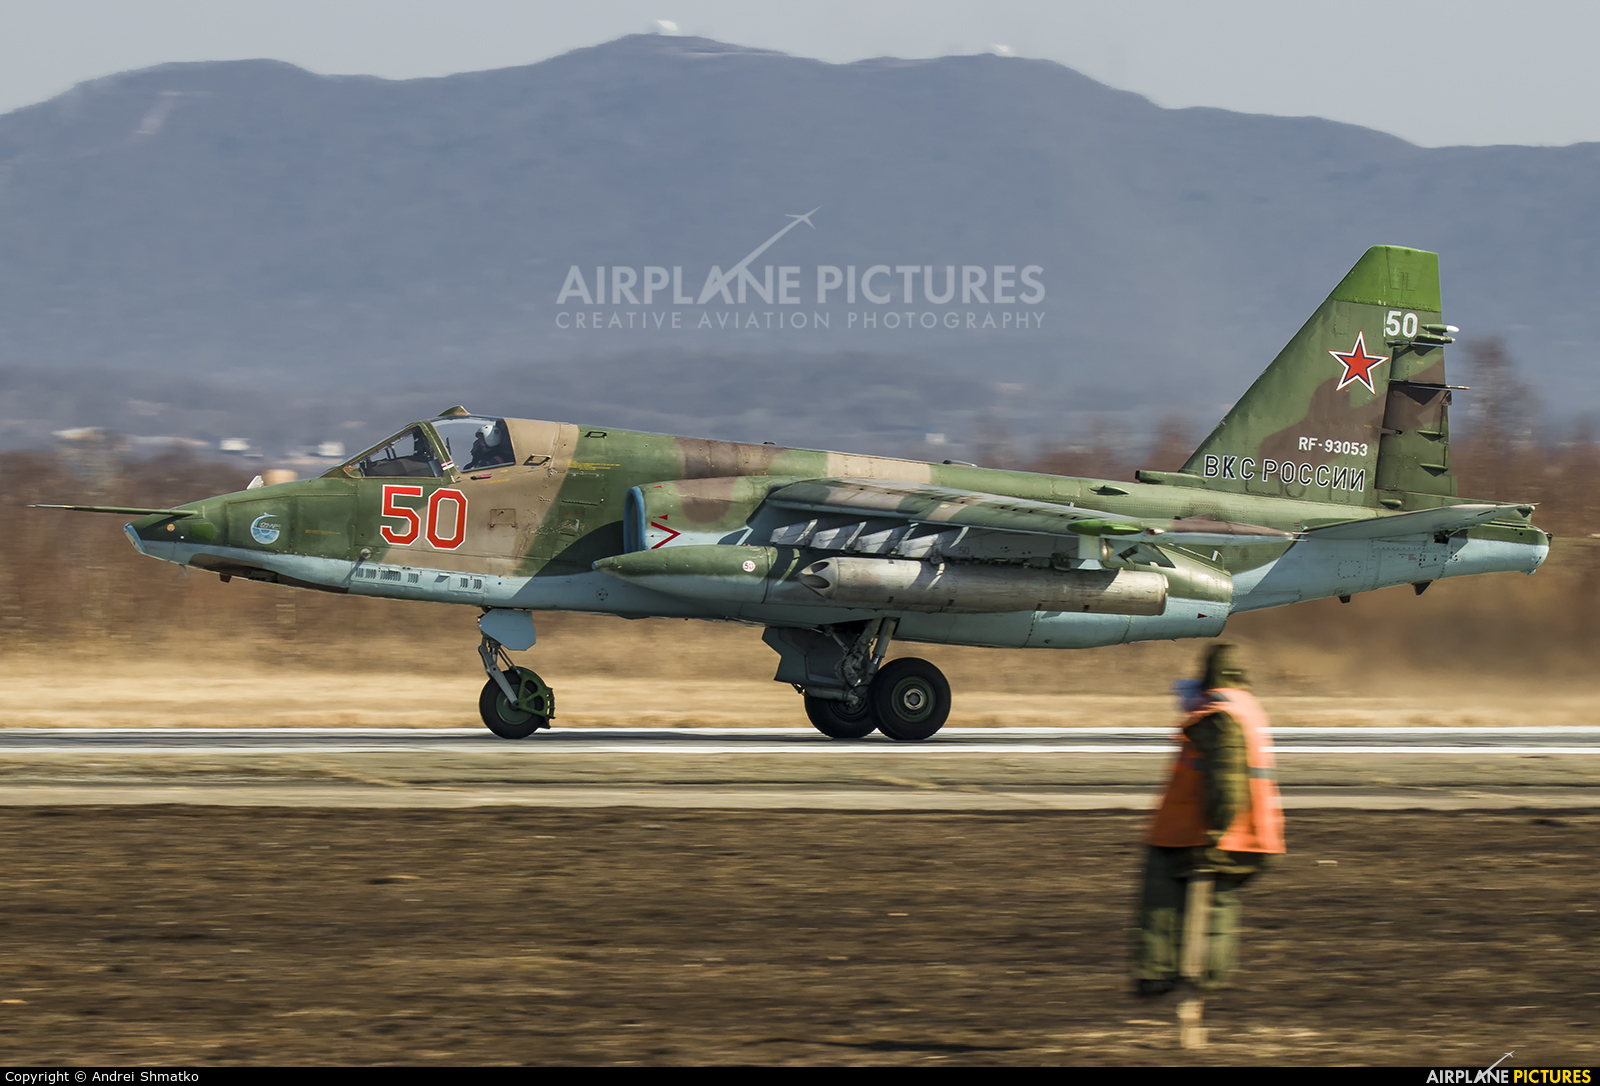 Russia - Air Force RF-93053 aircraft at Undisclosed Location